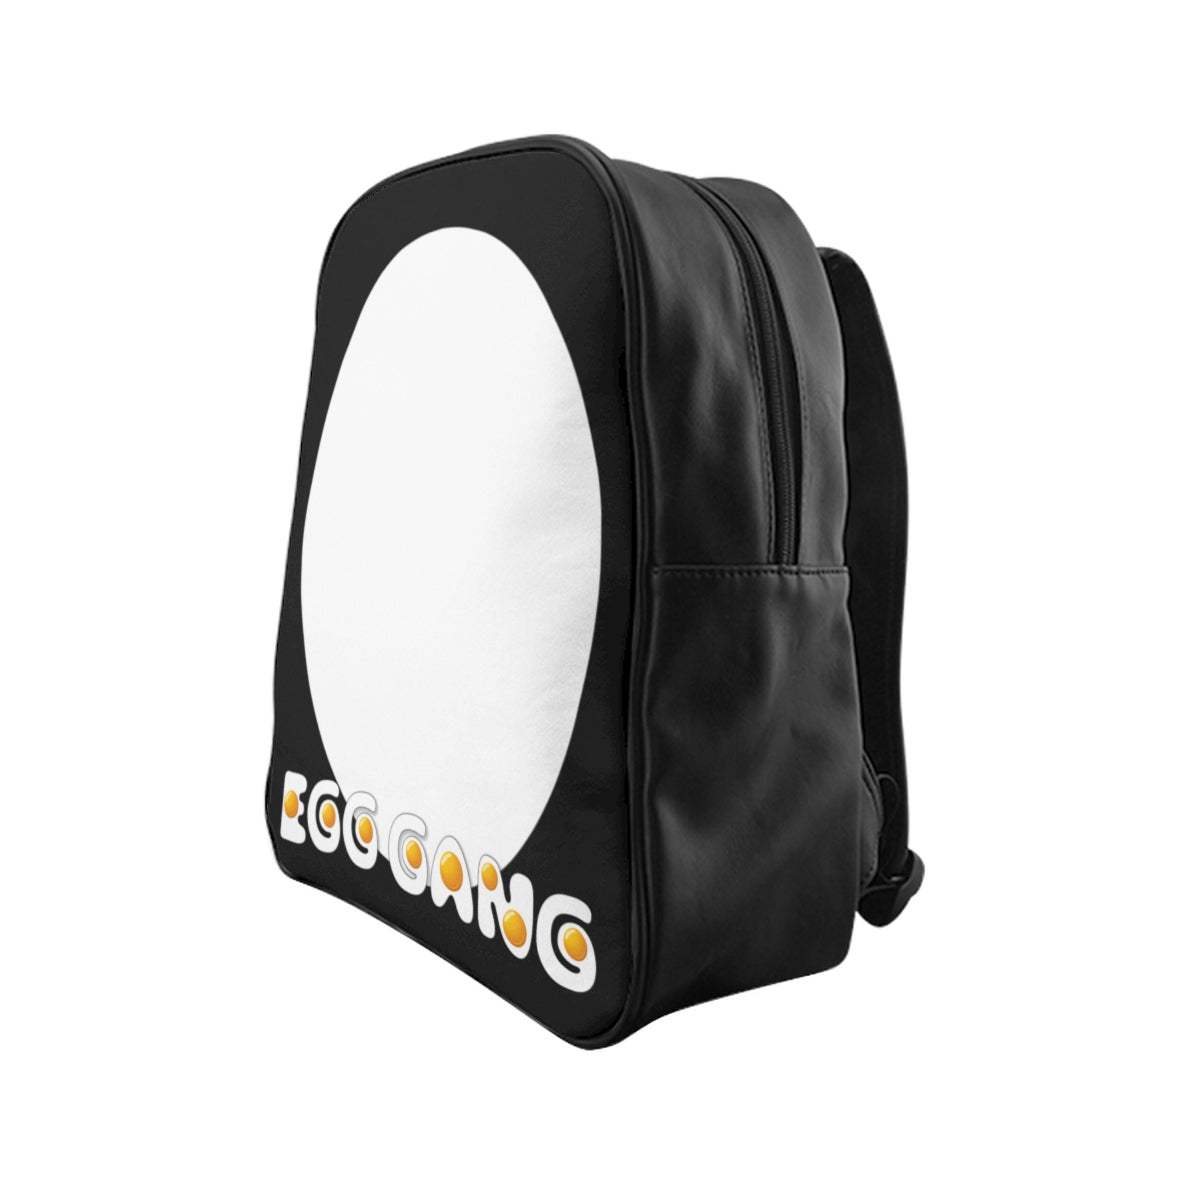 Egg White Backpack